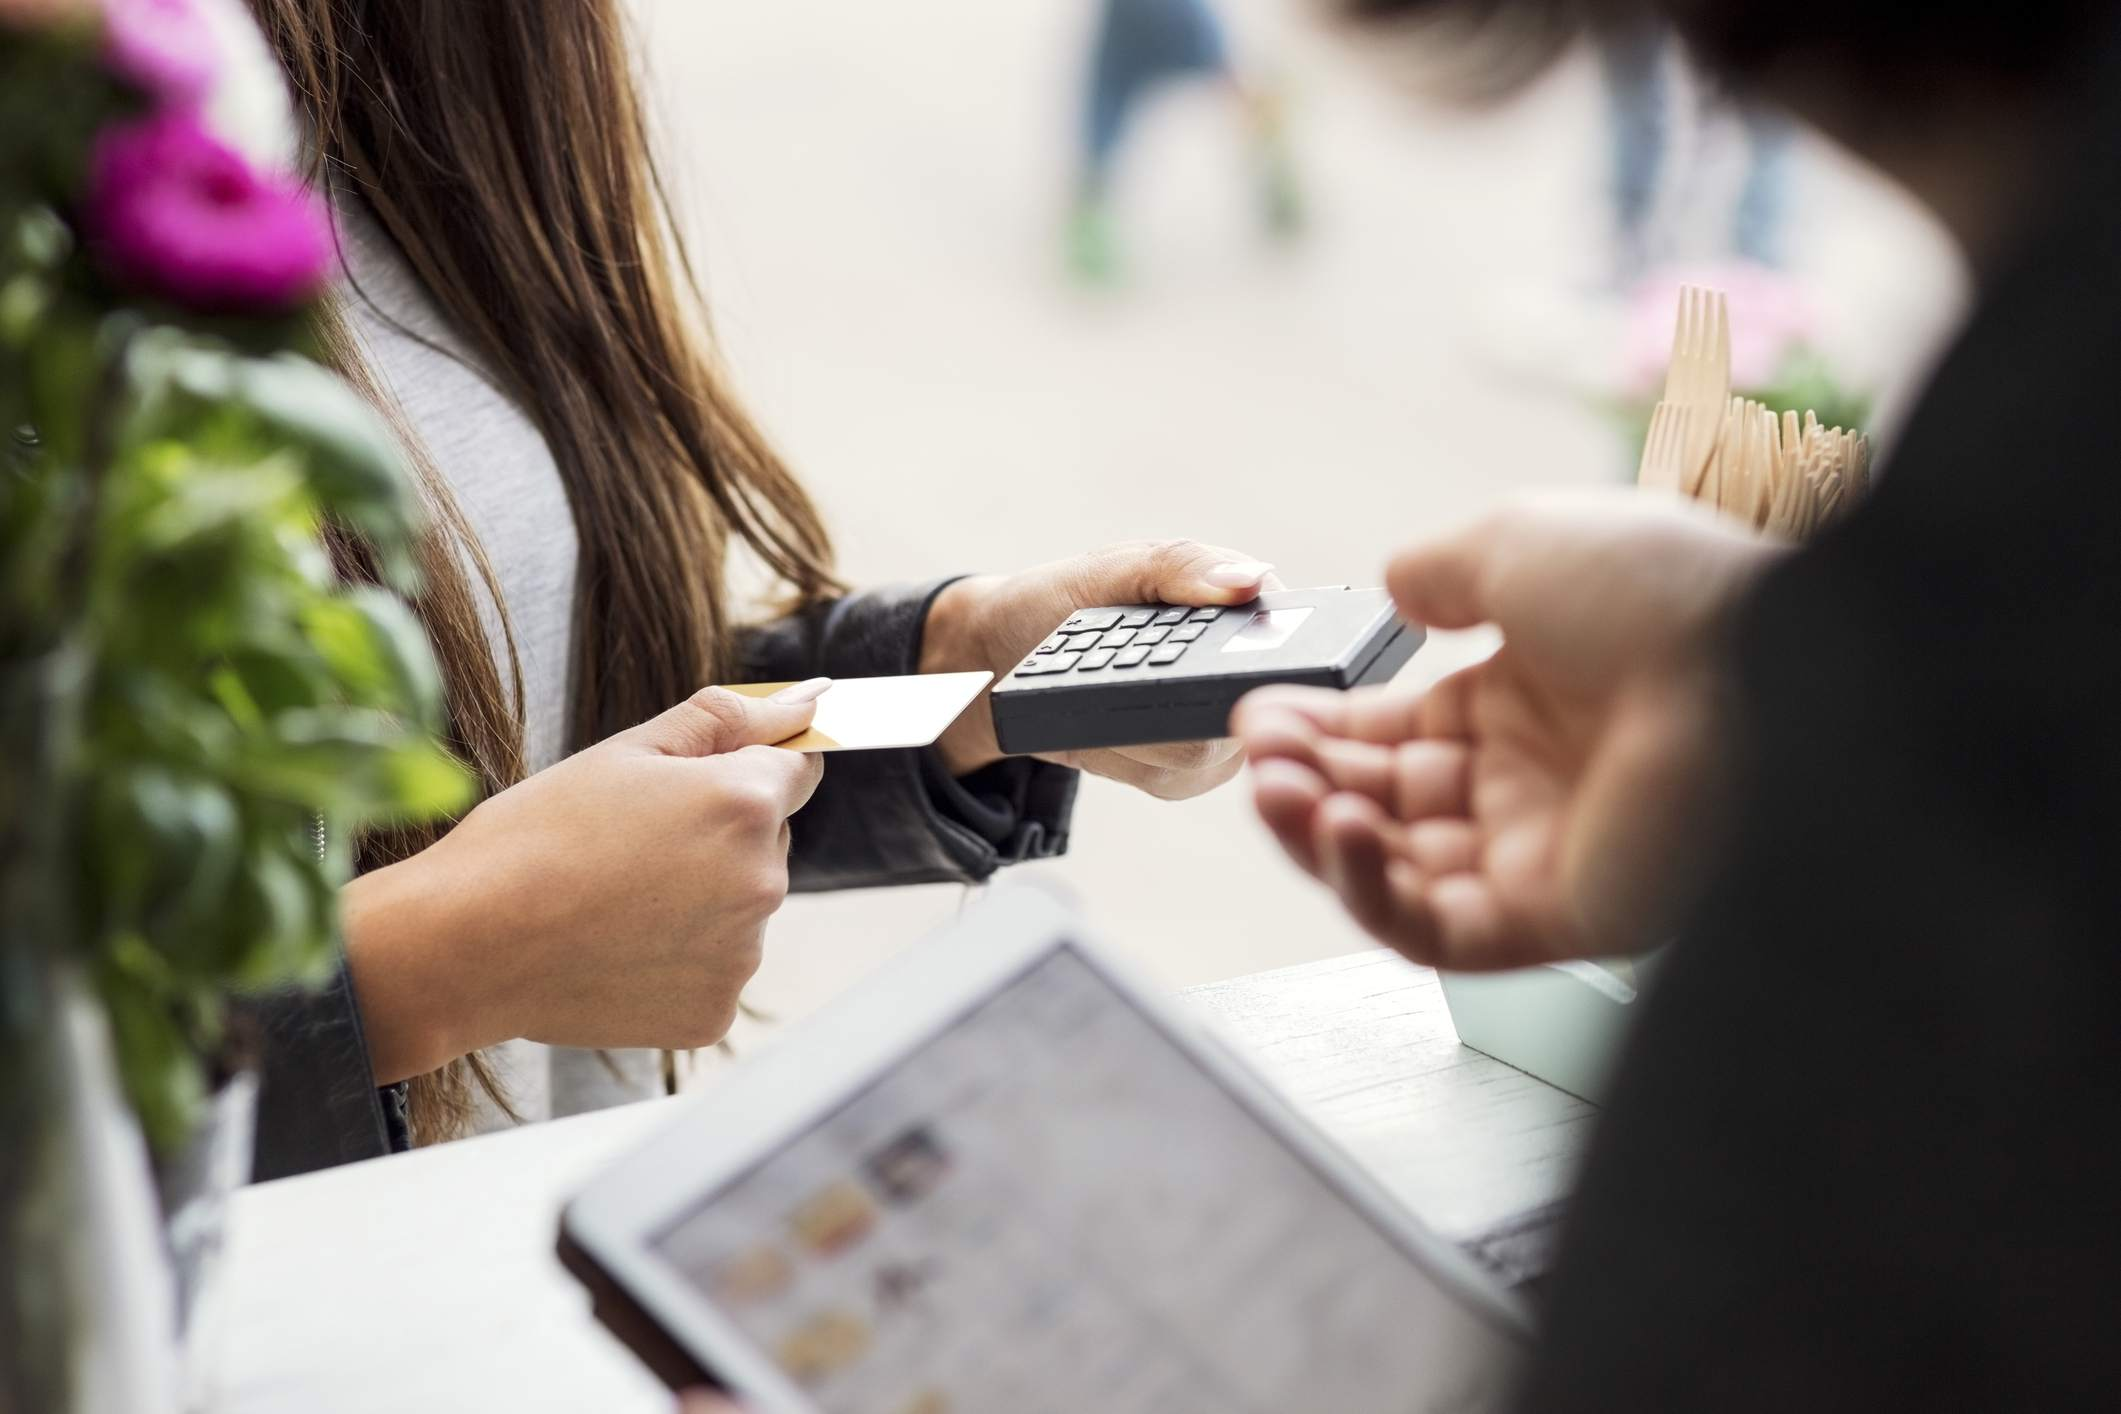 Woman inserting credit card to card reader at point of sale